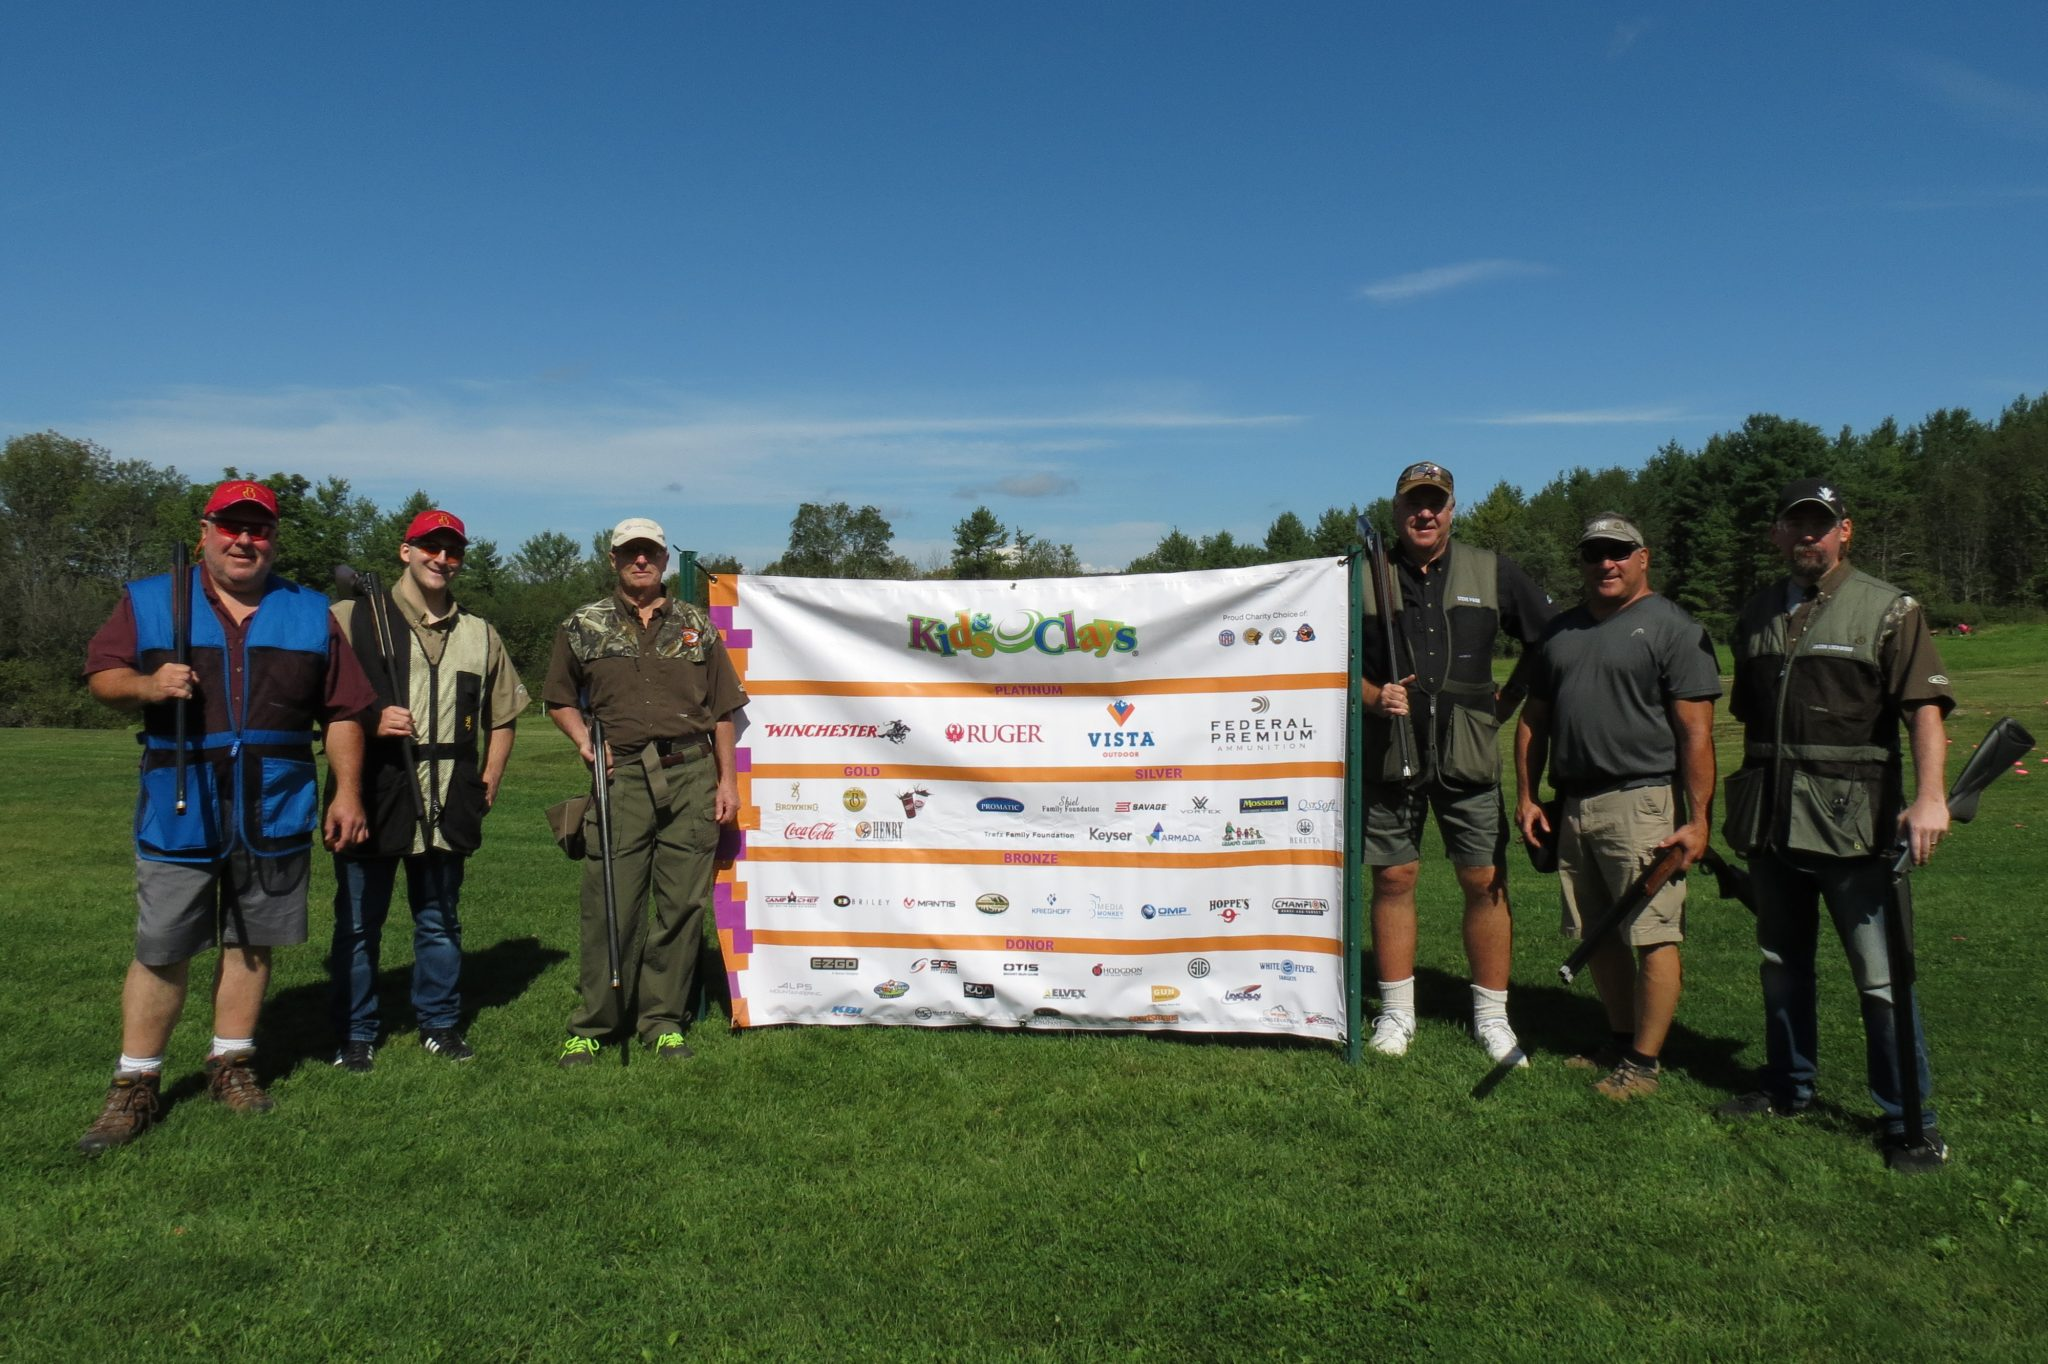 A team from the Guan Ho Ha Fish & Game Club at the 3rd Annual Kids & Clays Open